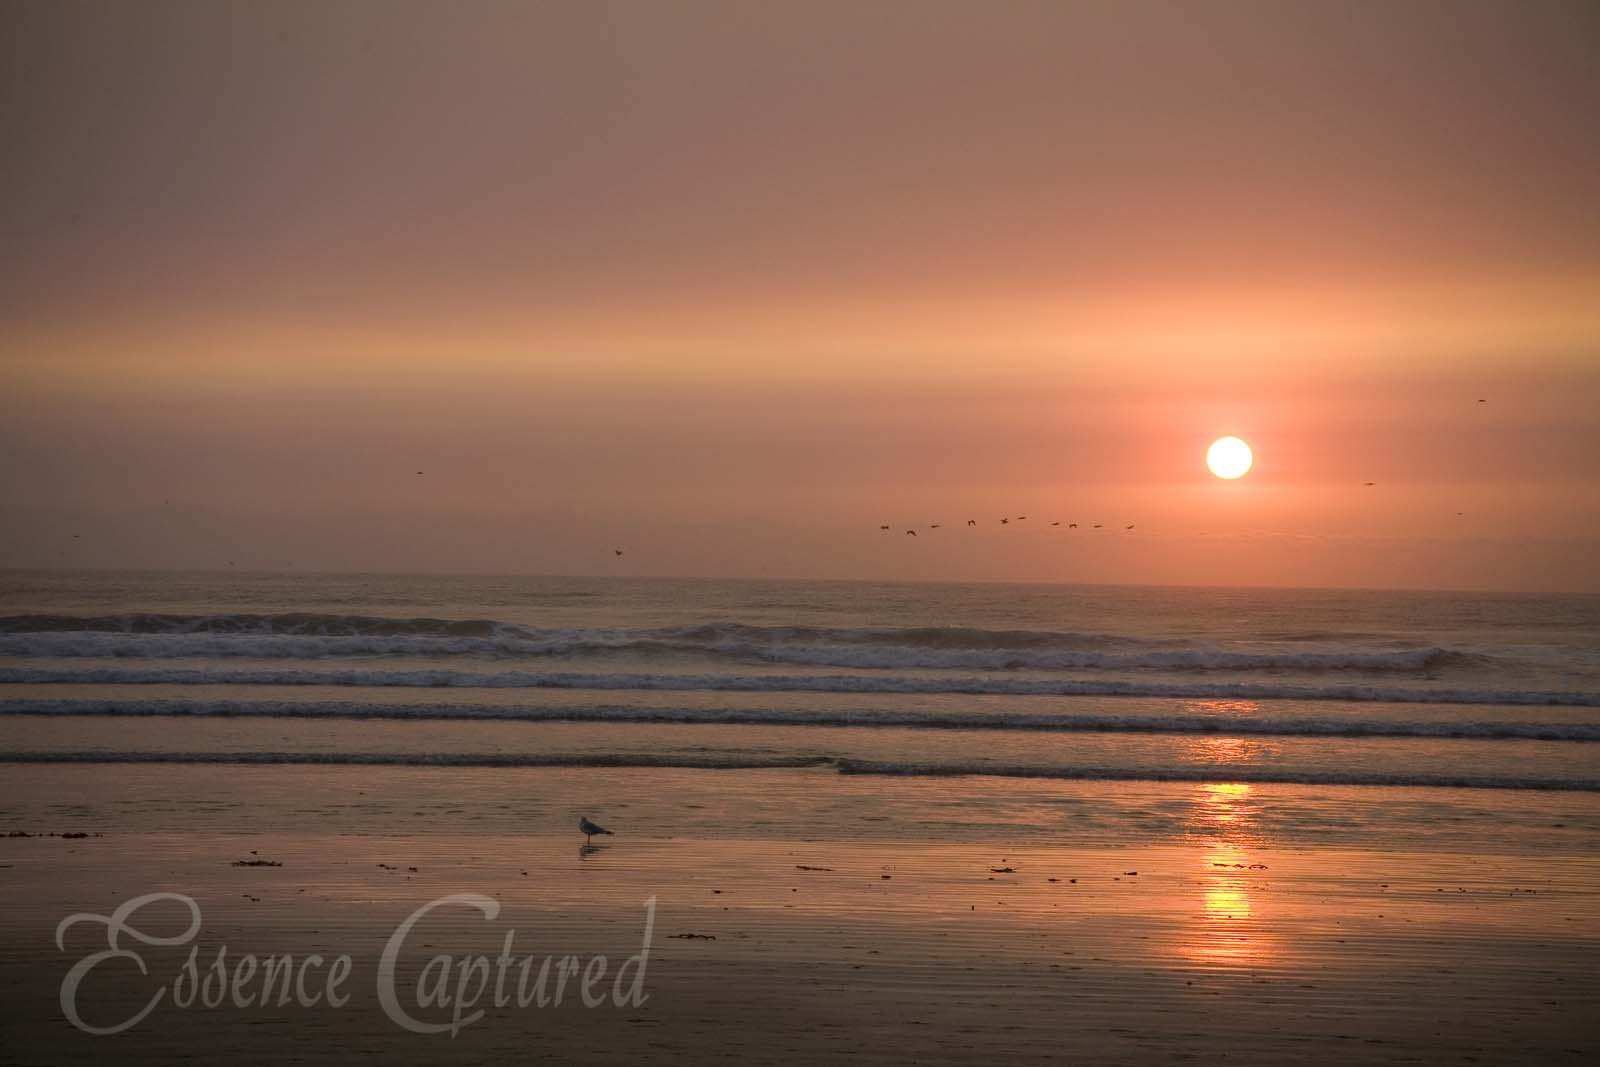 Pismo Beach Sunset Orange Sky Seagulls Pelicans Birds